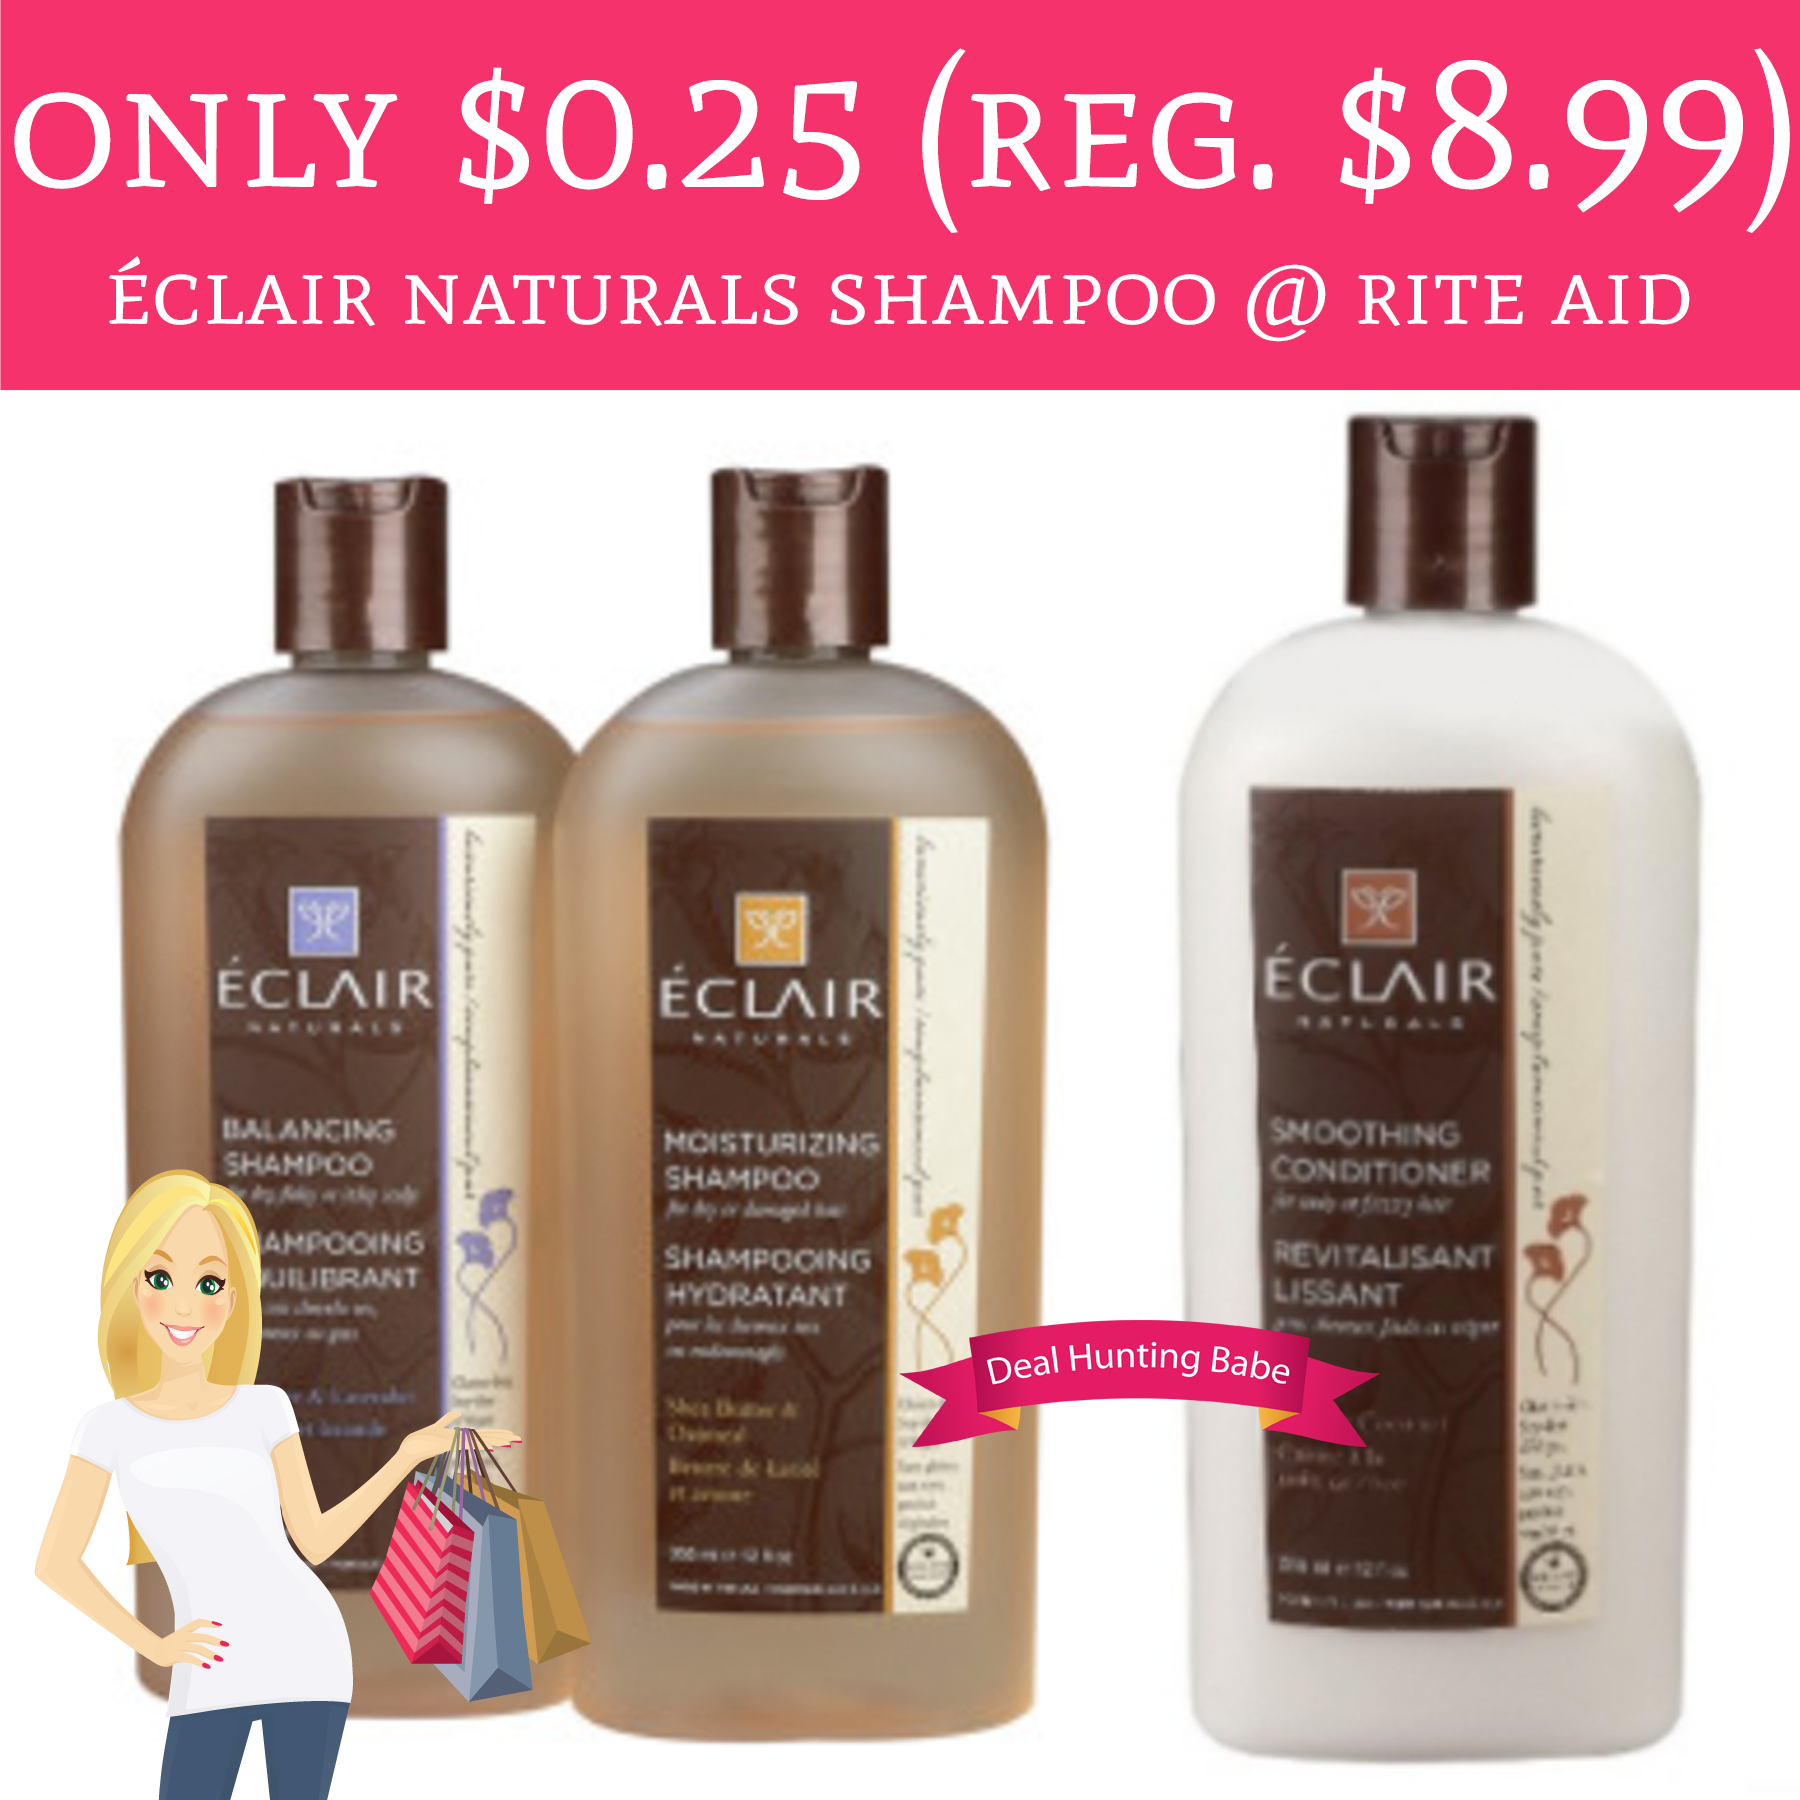 Rite Aid Stock Quote: Only $0.25 (Regular $8.99) Éclair Naturals Shampoo @ Rite